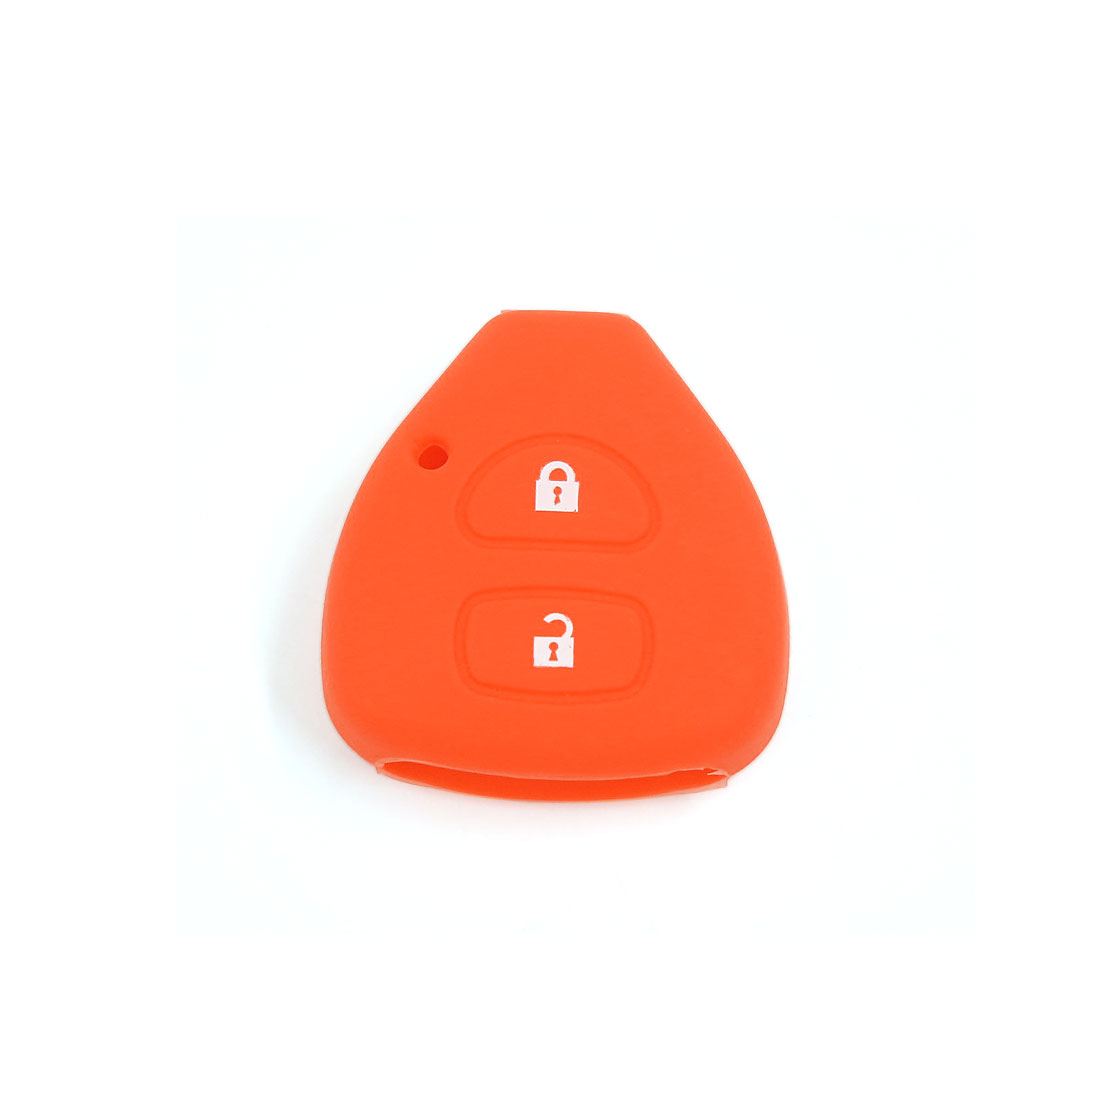 Orange Silicone Keyless Remote Key Fob Case Fits Toyota Yaris Auris 2 Buttons